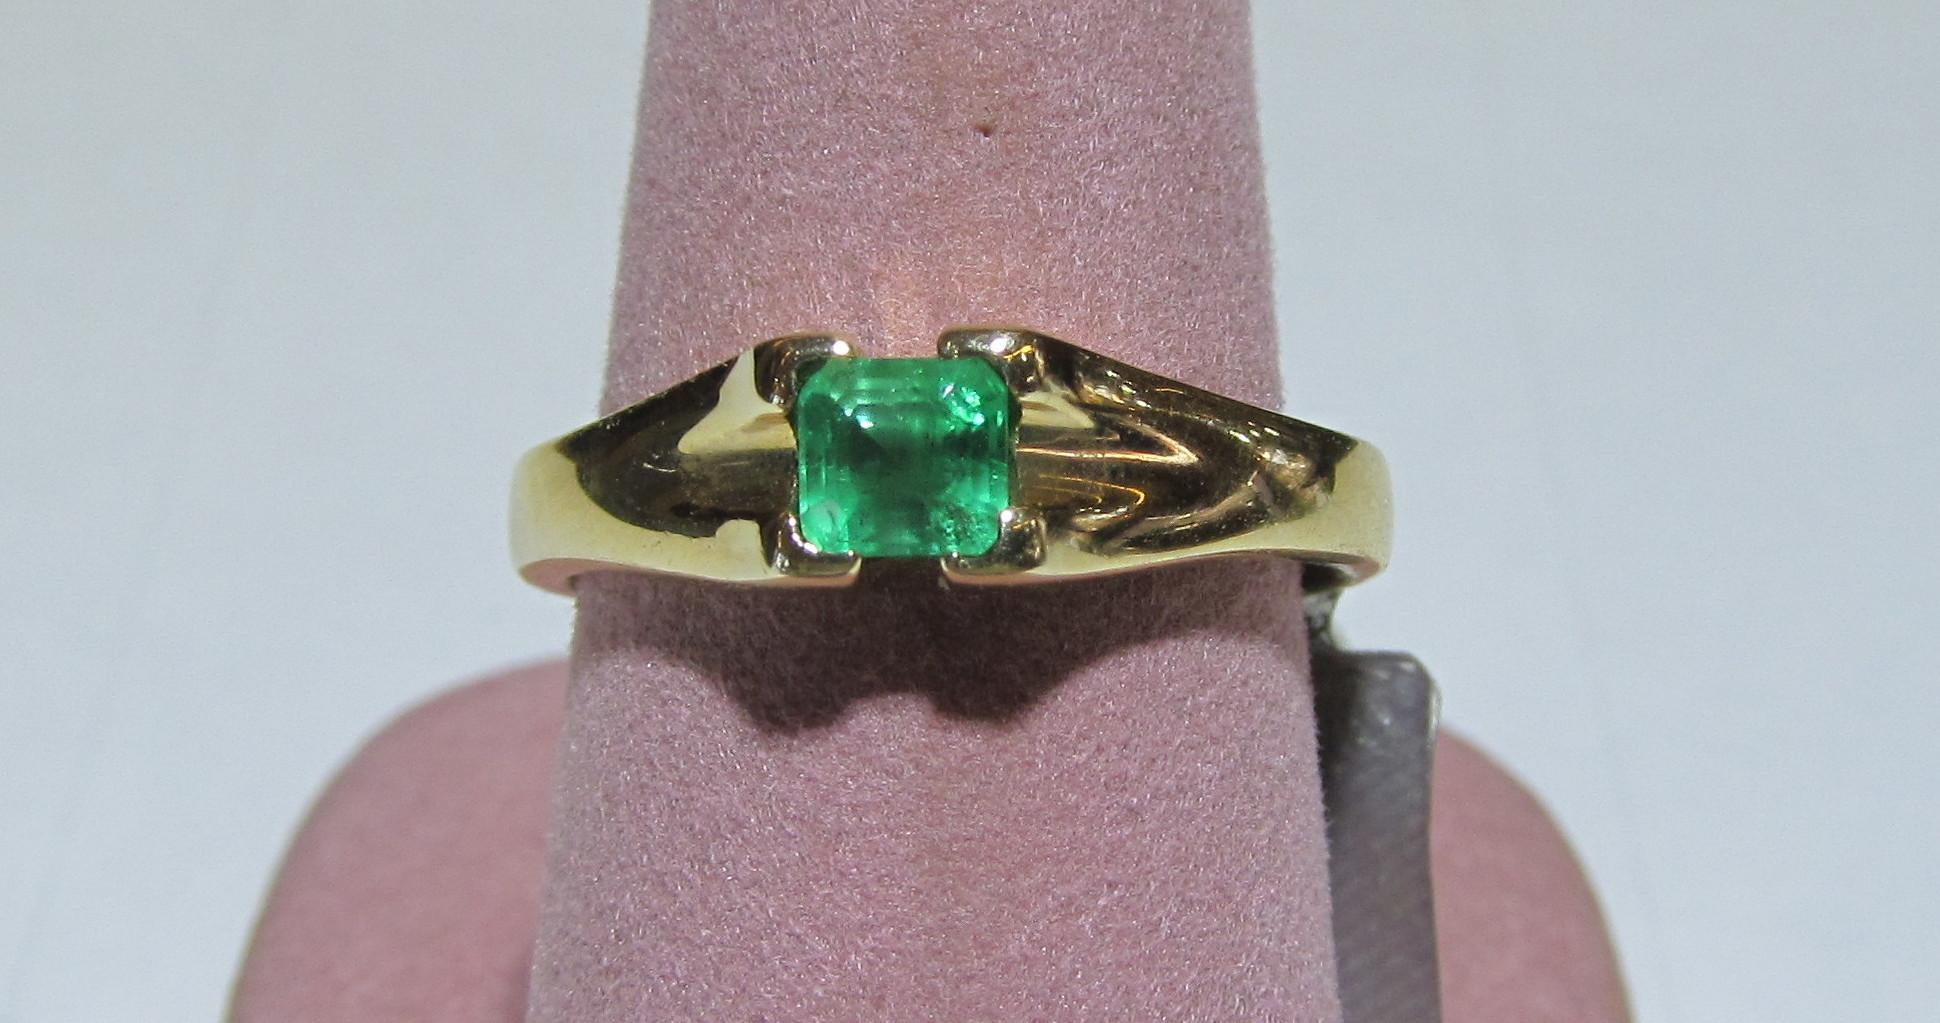 Emerald 0.39 Carat Cushion Cut Ring Set in 14kt Yellow Gold - Size 7